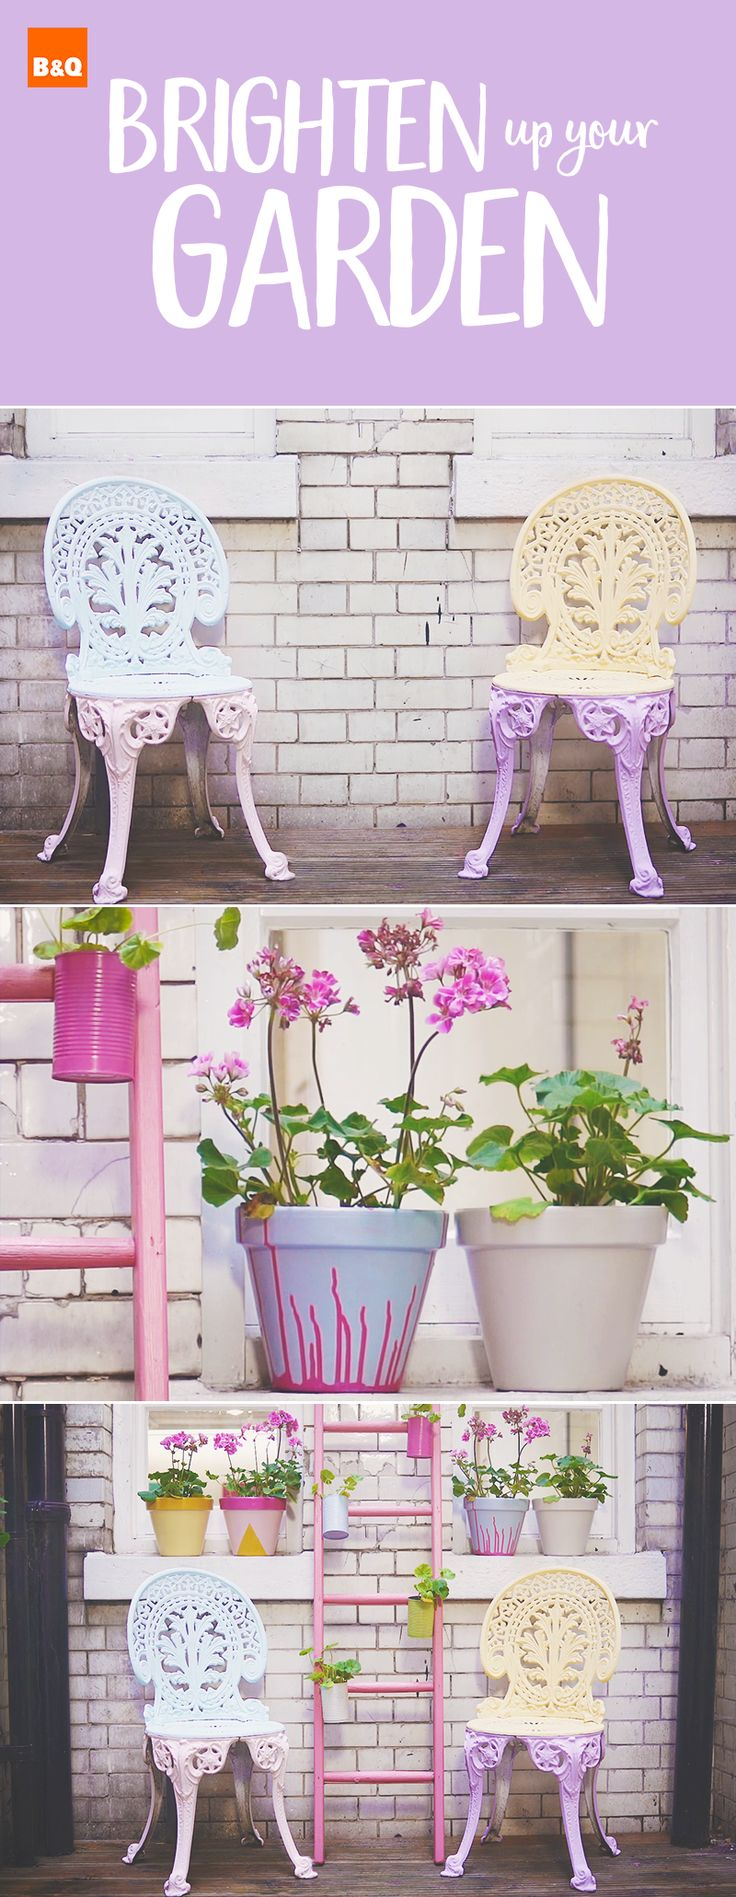 Giving your garden furniture a makeover is ultra quick and easy with Ronseal Garden paint. There is no need for prep or sanding (unless your items are reeaalllyyy battered) and can be used for painting metal, painting wood, painting terracotta and paintin https://noahxnw.tumblr.com/post/160809221441/i-love-graffiti-and-street-art